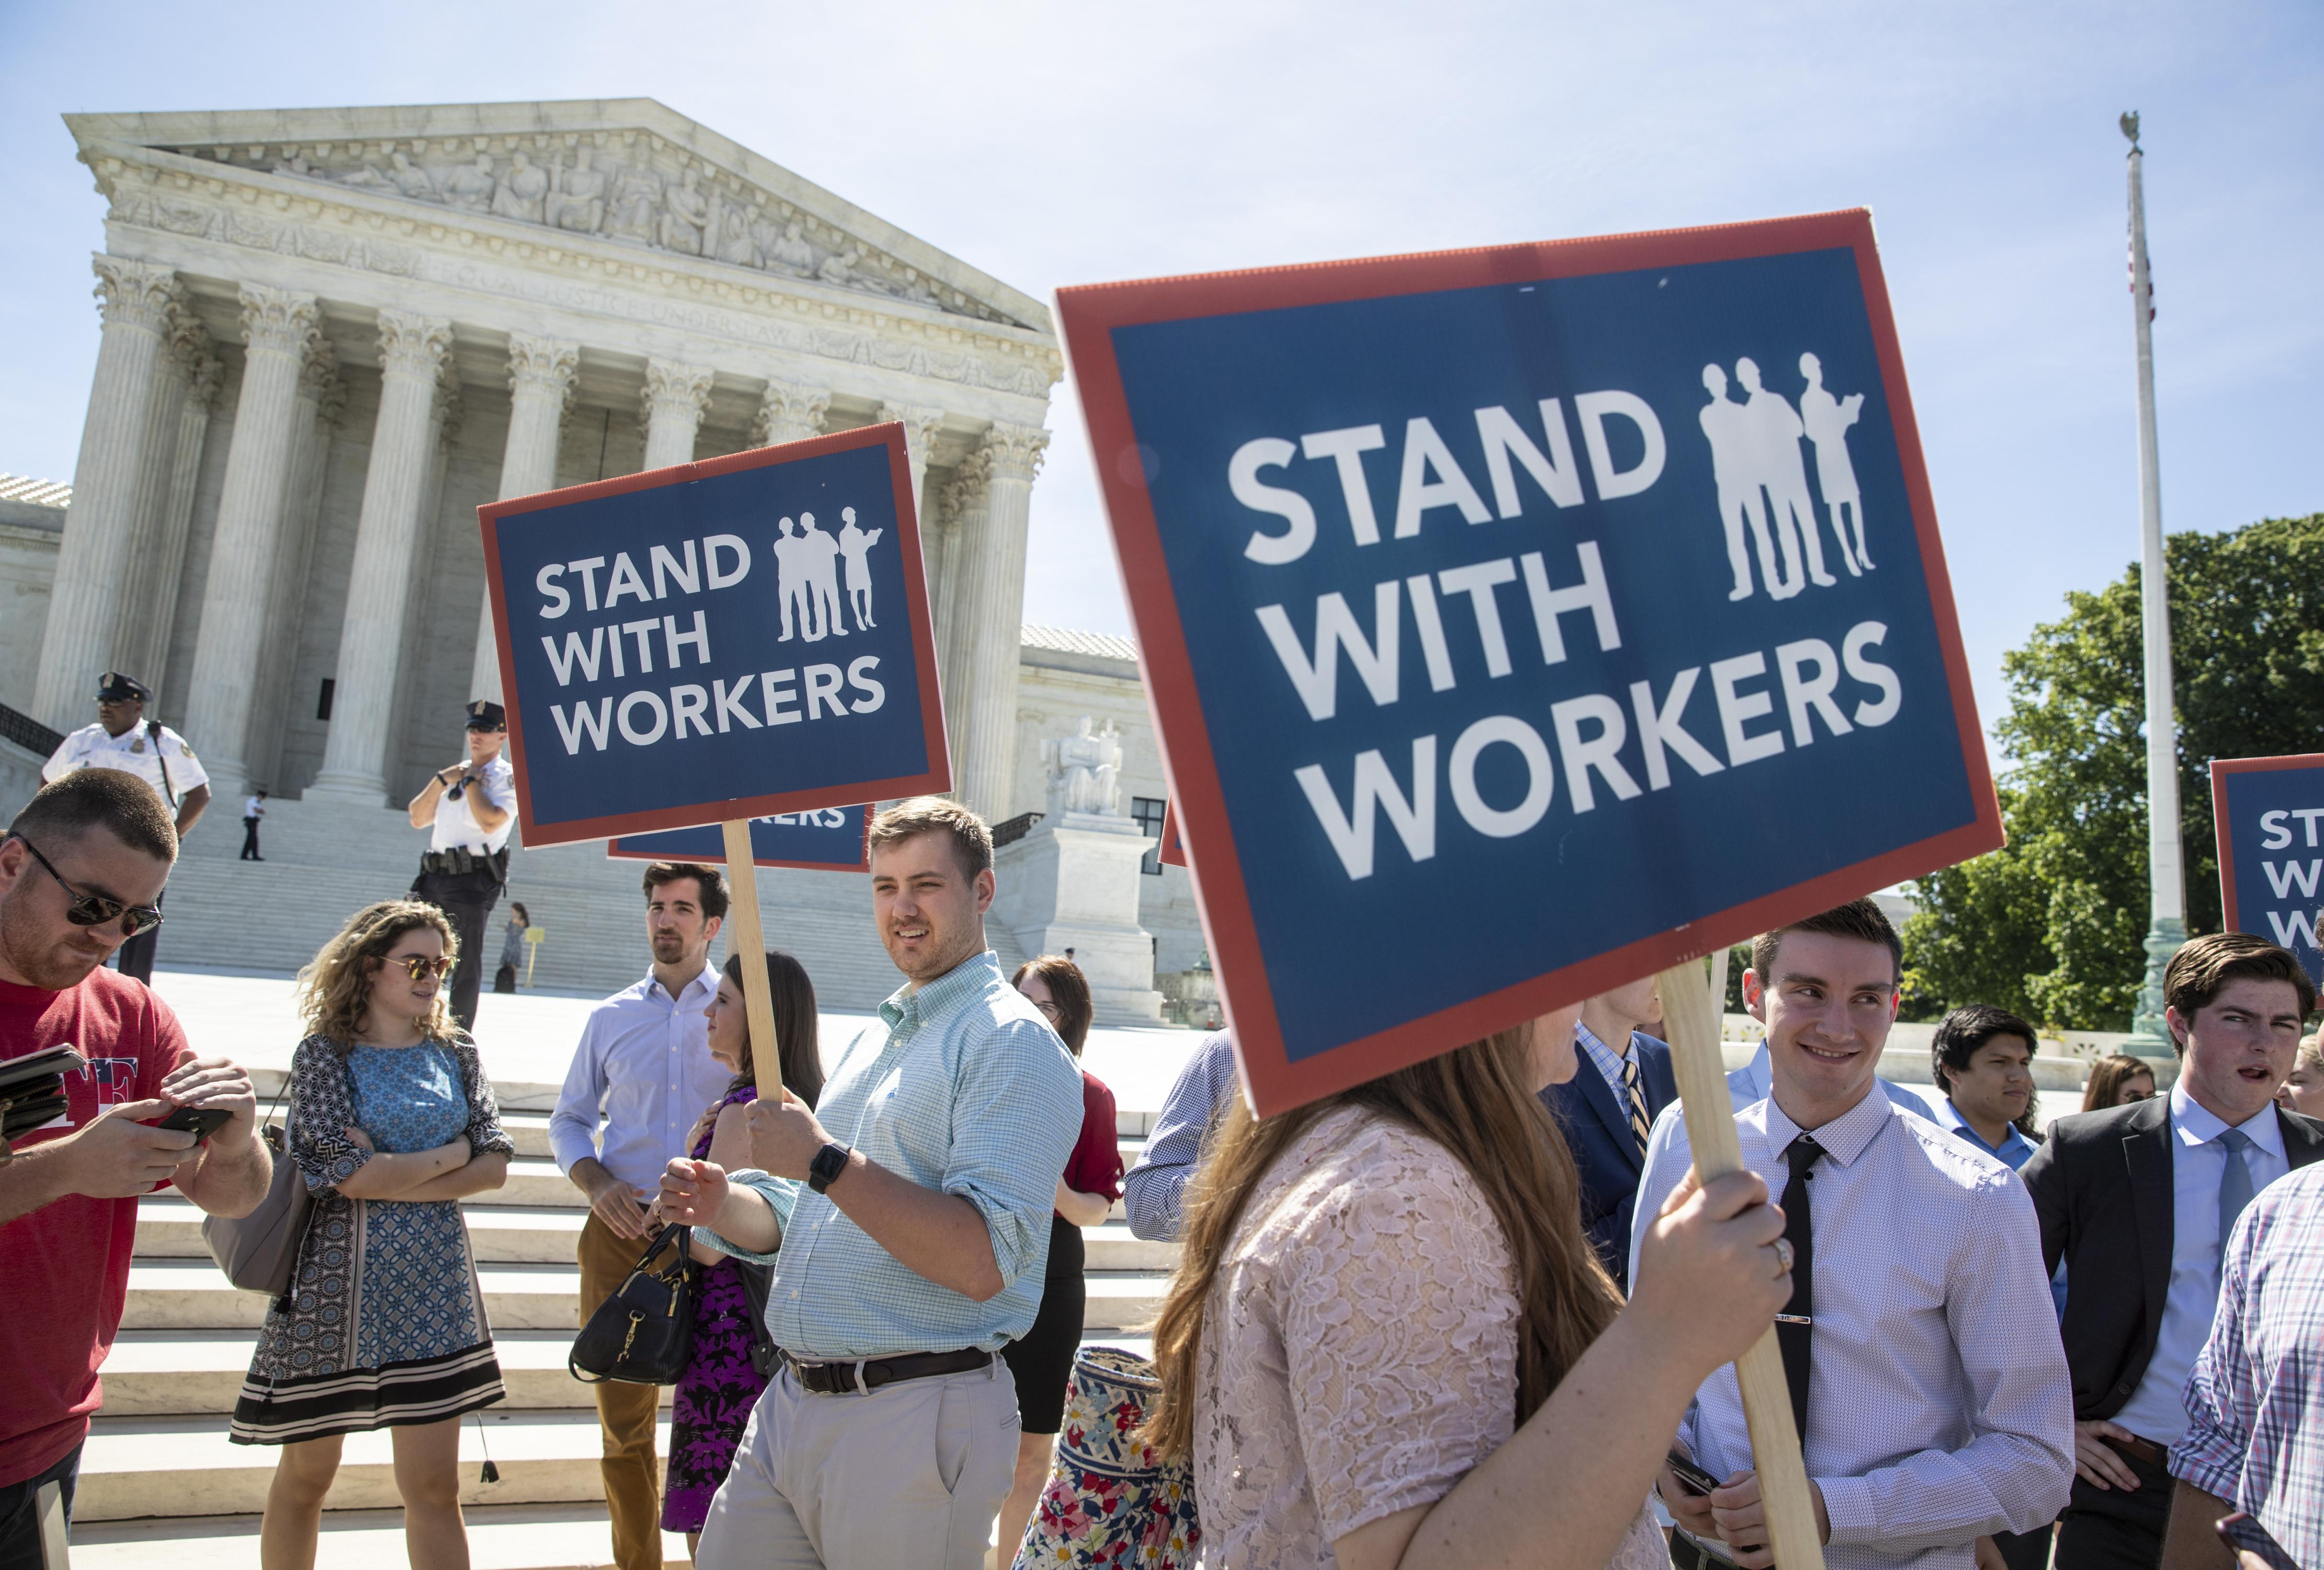 Lawyers use Supreme Court's union ruling to challenge state bar dues on political grounds